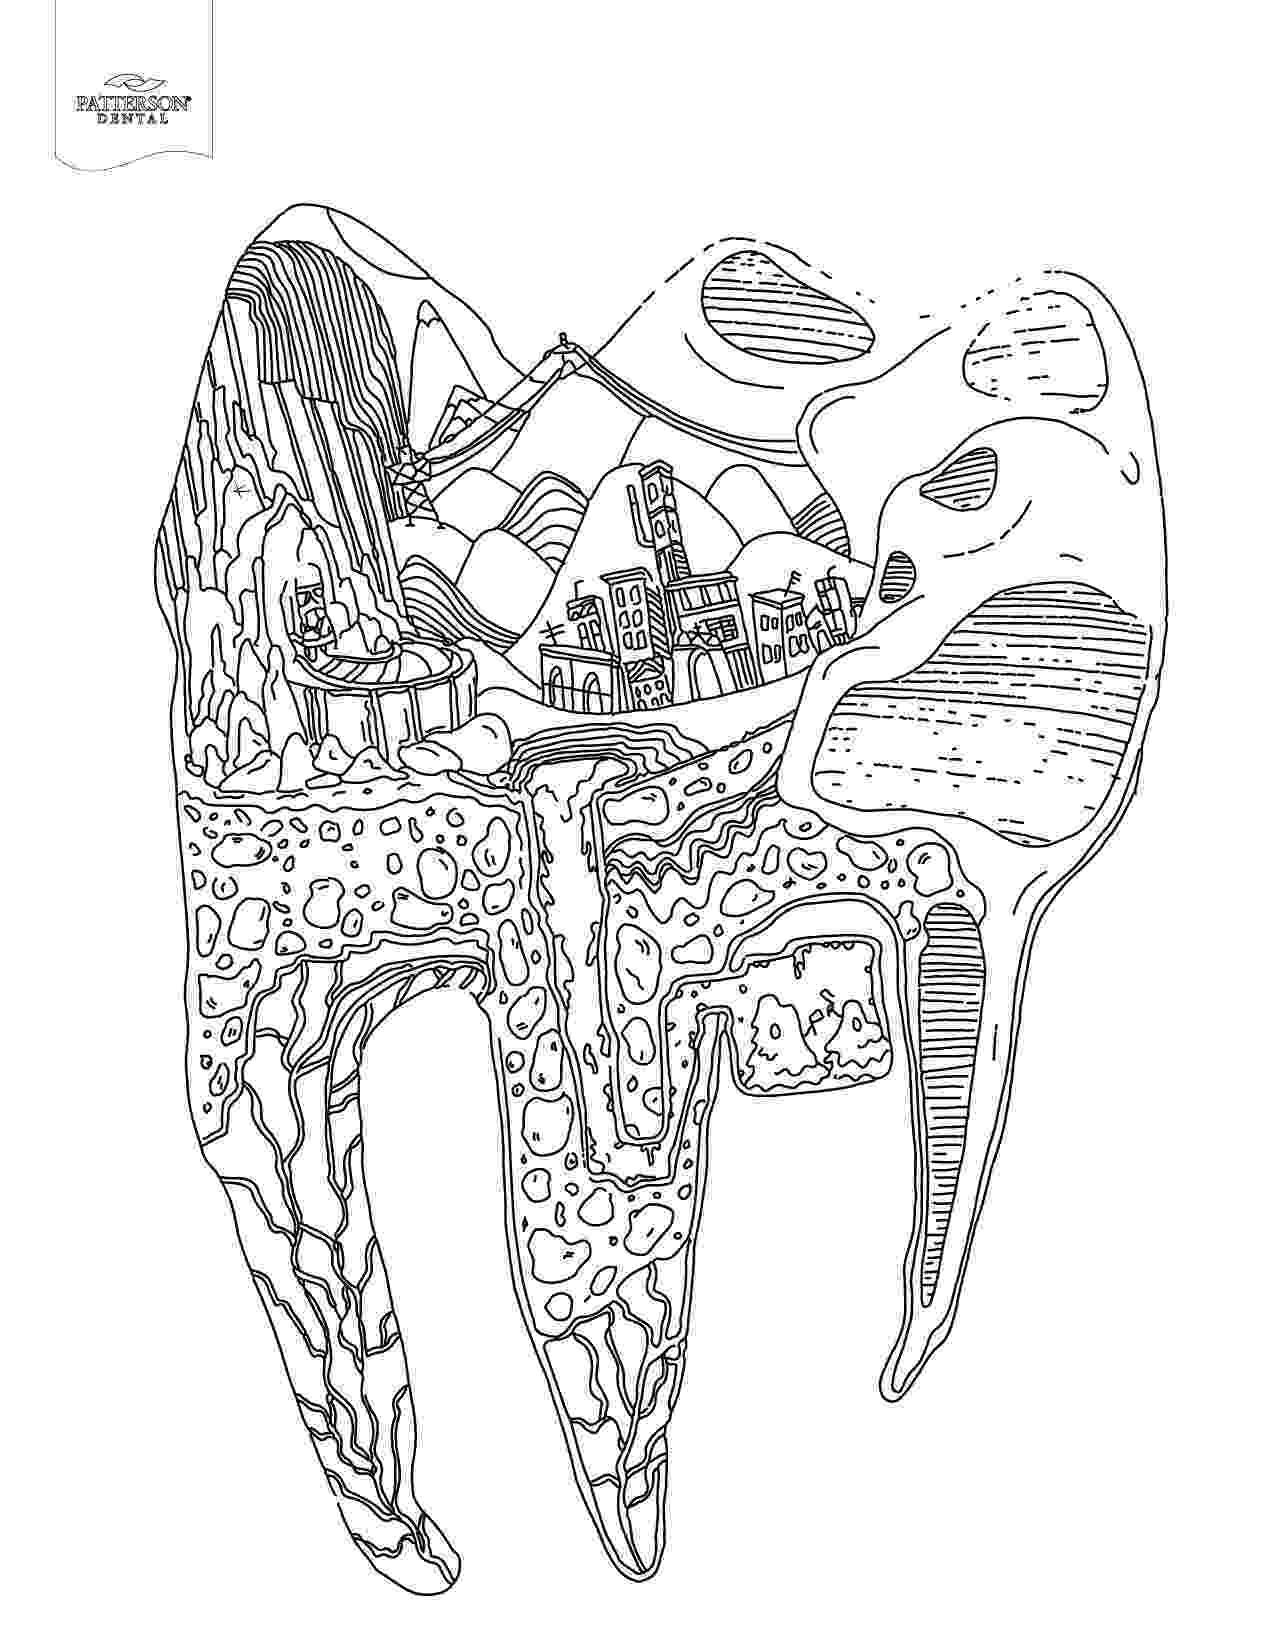 teeth coloring page tooth coloring page wallpaper tooth template coloring coloring page teeth